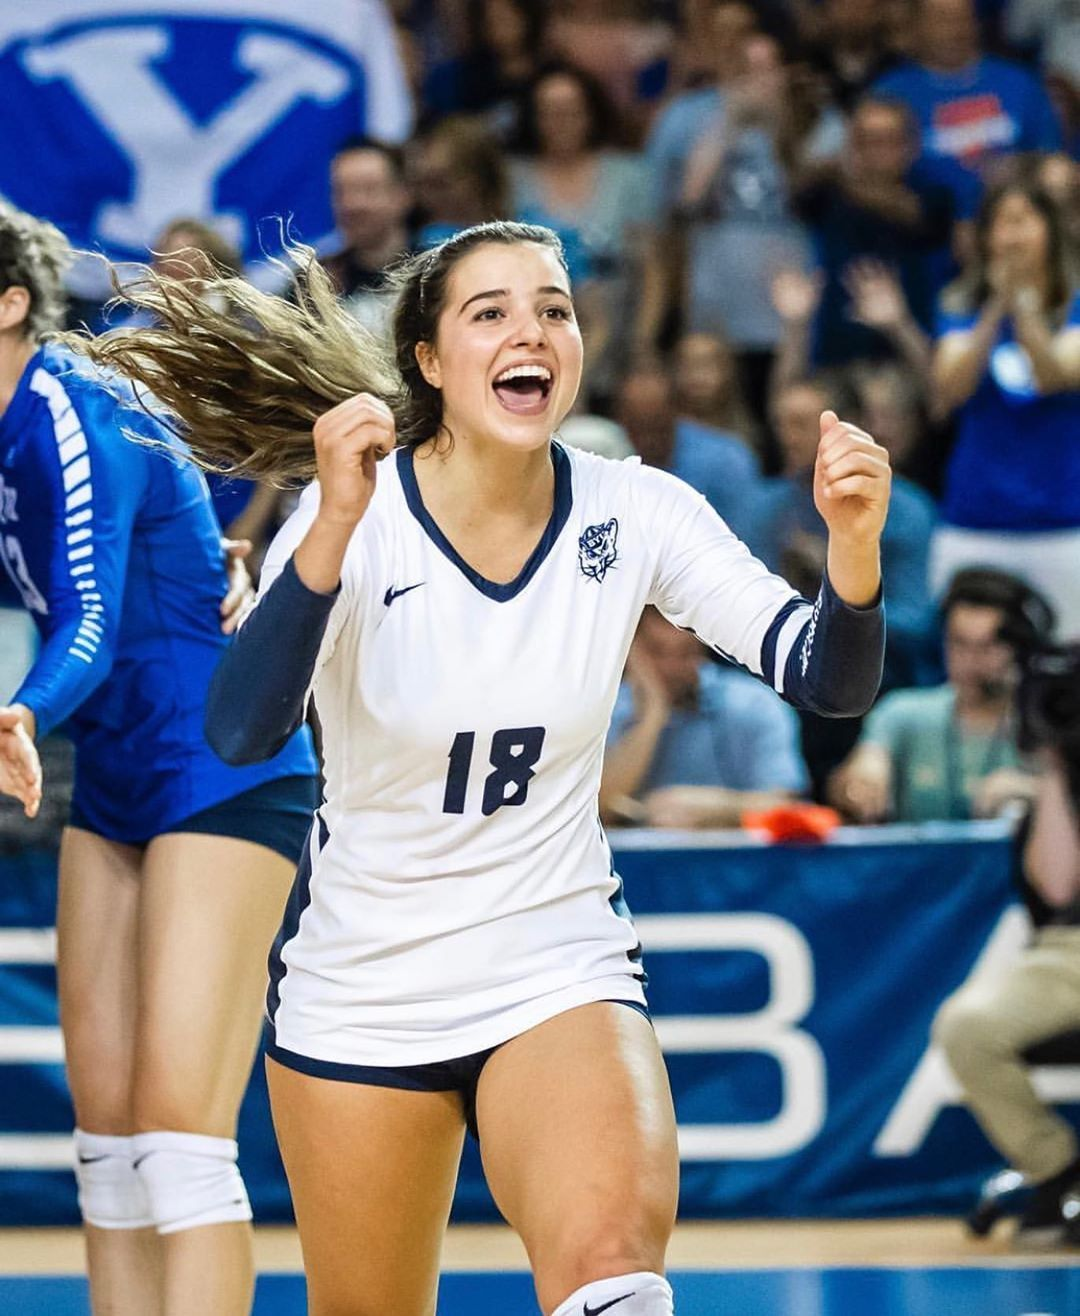 Byu Women S Volleyball On Instagram What Do Marybeth181124 And Uswnt Have In Common They Re Both World Champio Women Volleyball Uswnt Volleyball